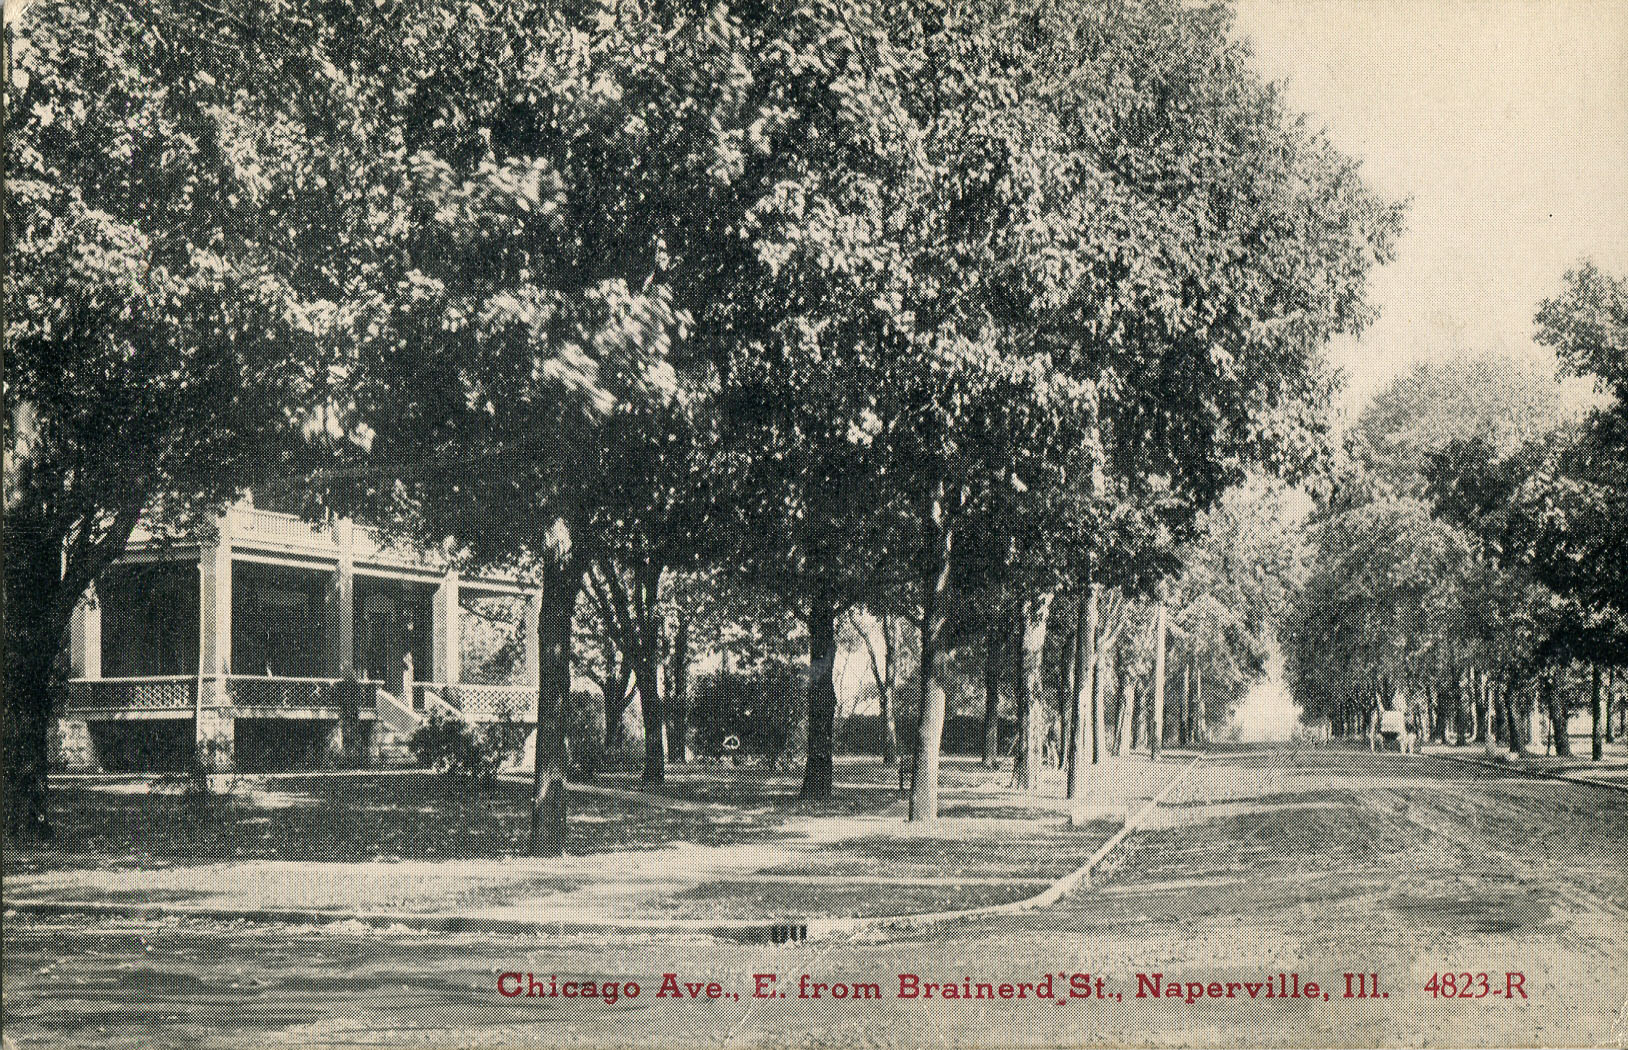 Postcard view of Chicago Avenue